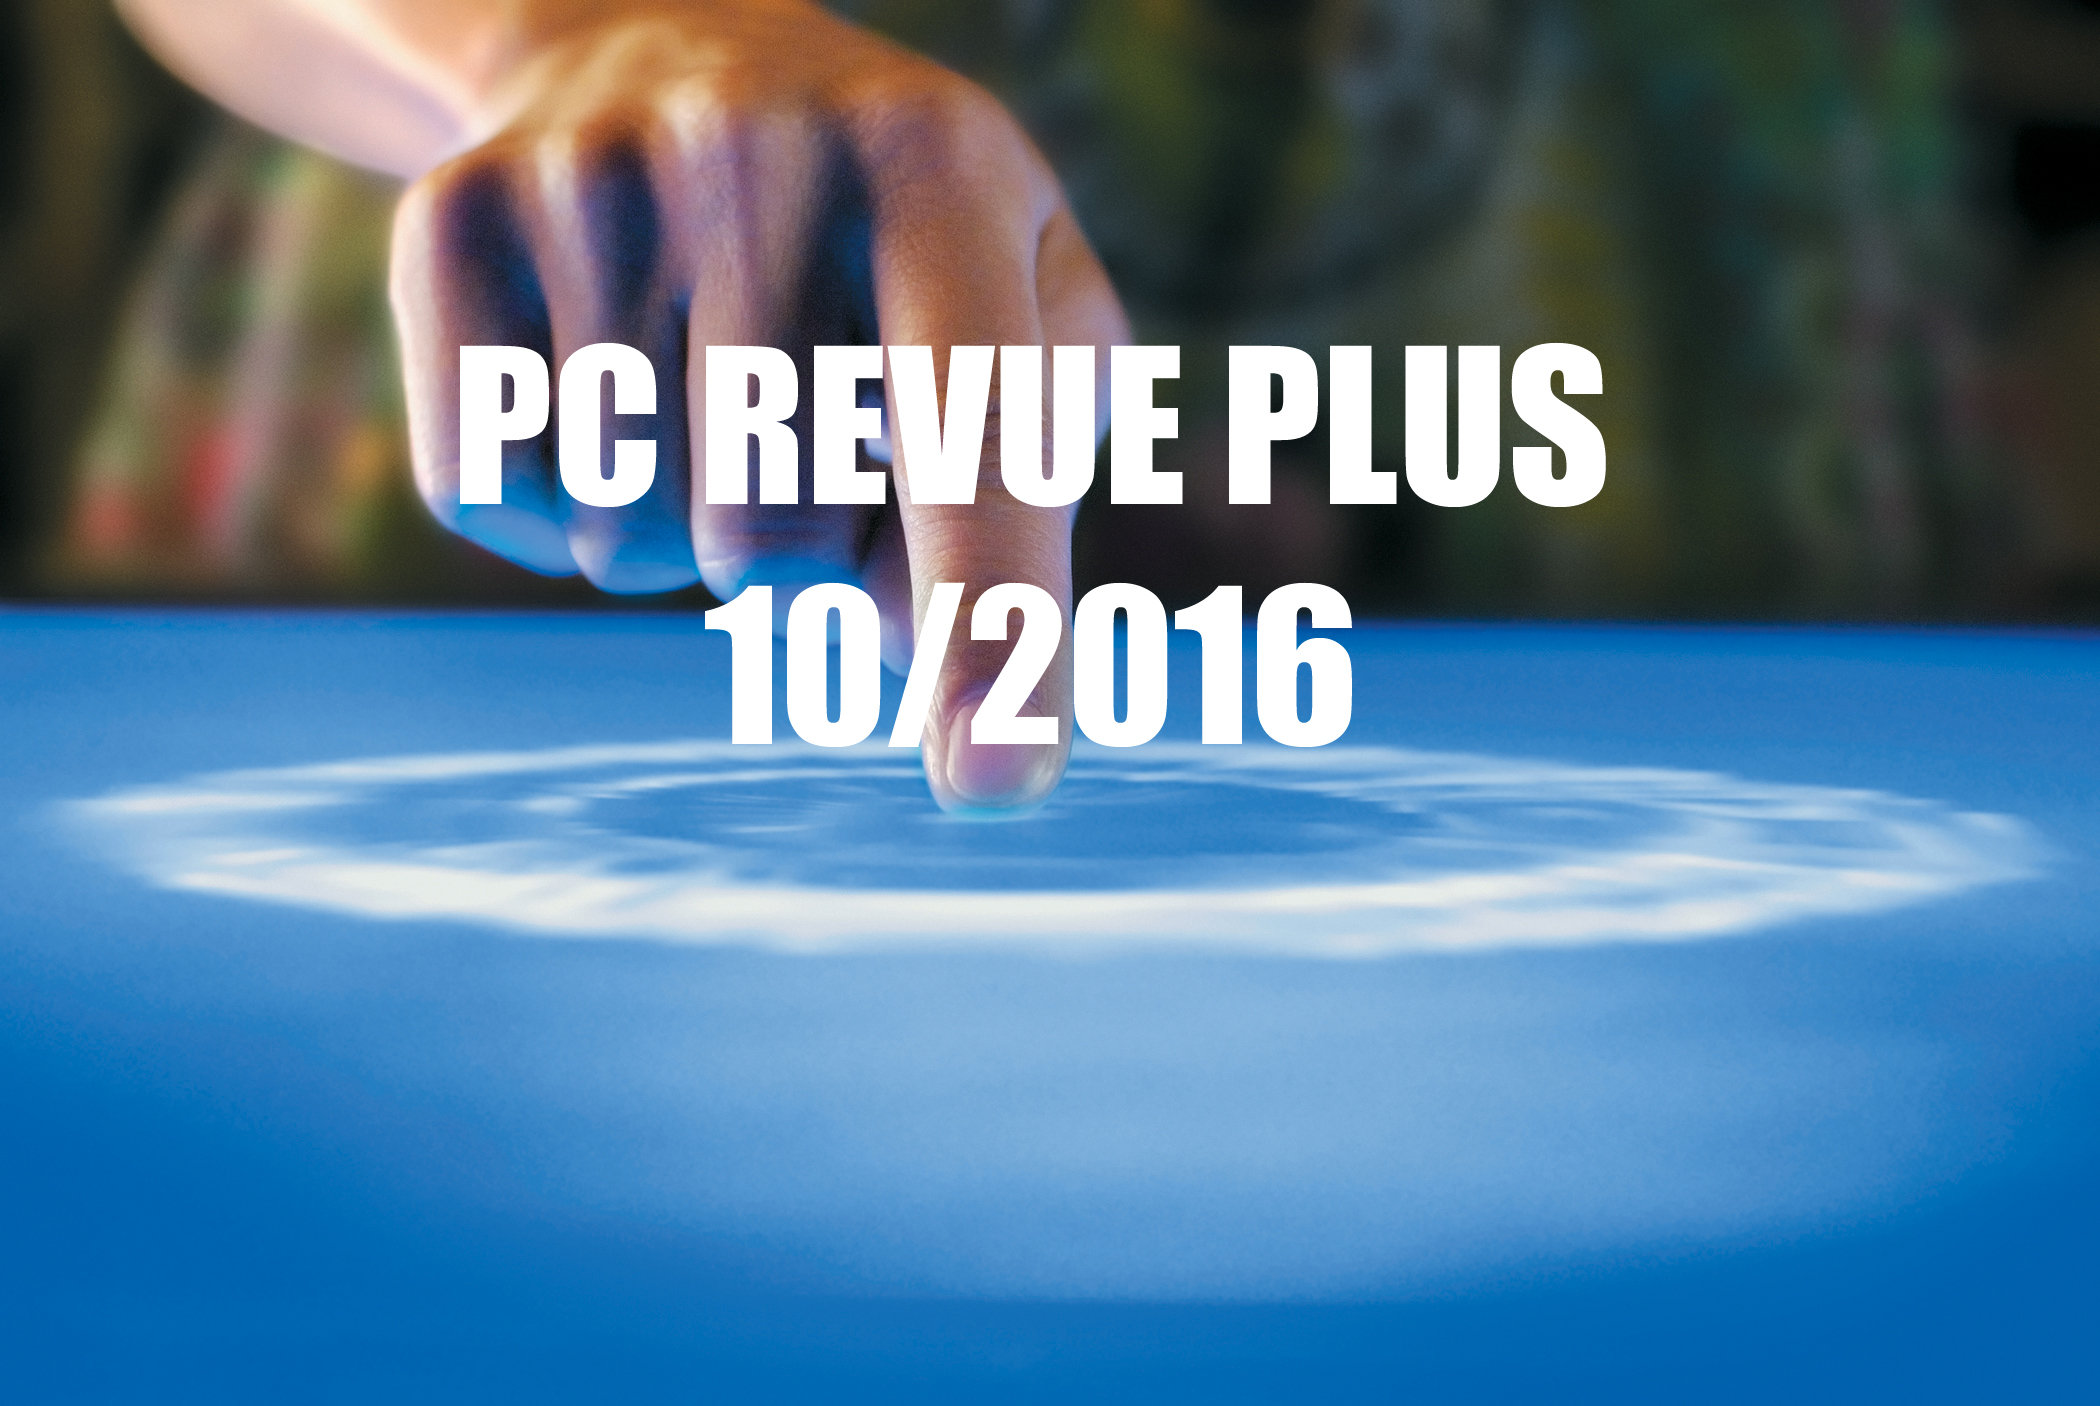 Photo PC REVUE plus 10/2016